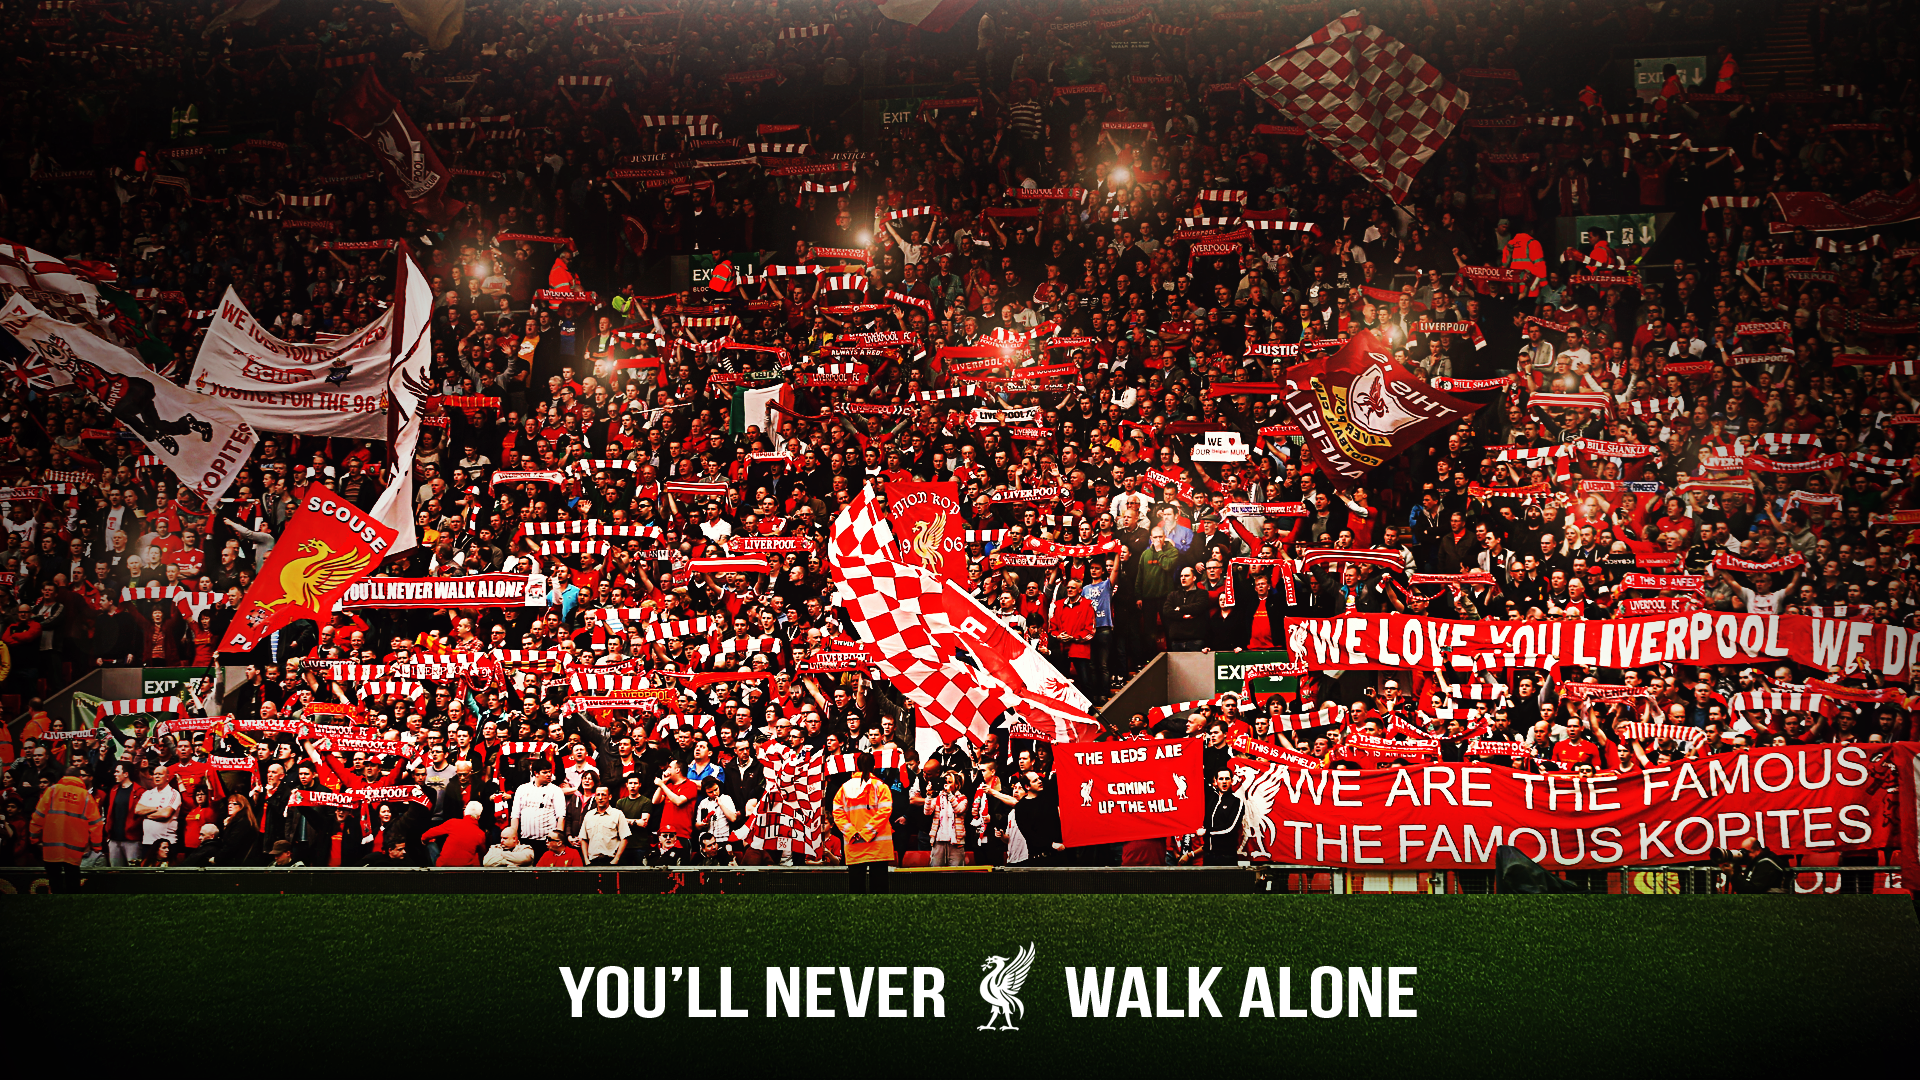 Wallpaper iphone liverpool - Liverpool Fc Wallpaper For Iphone English Football Team